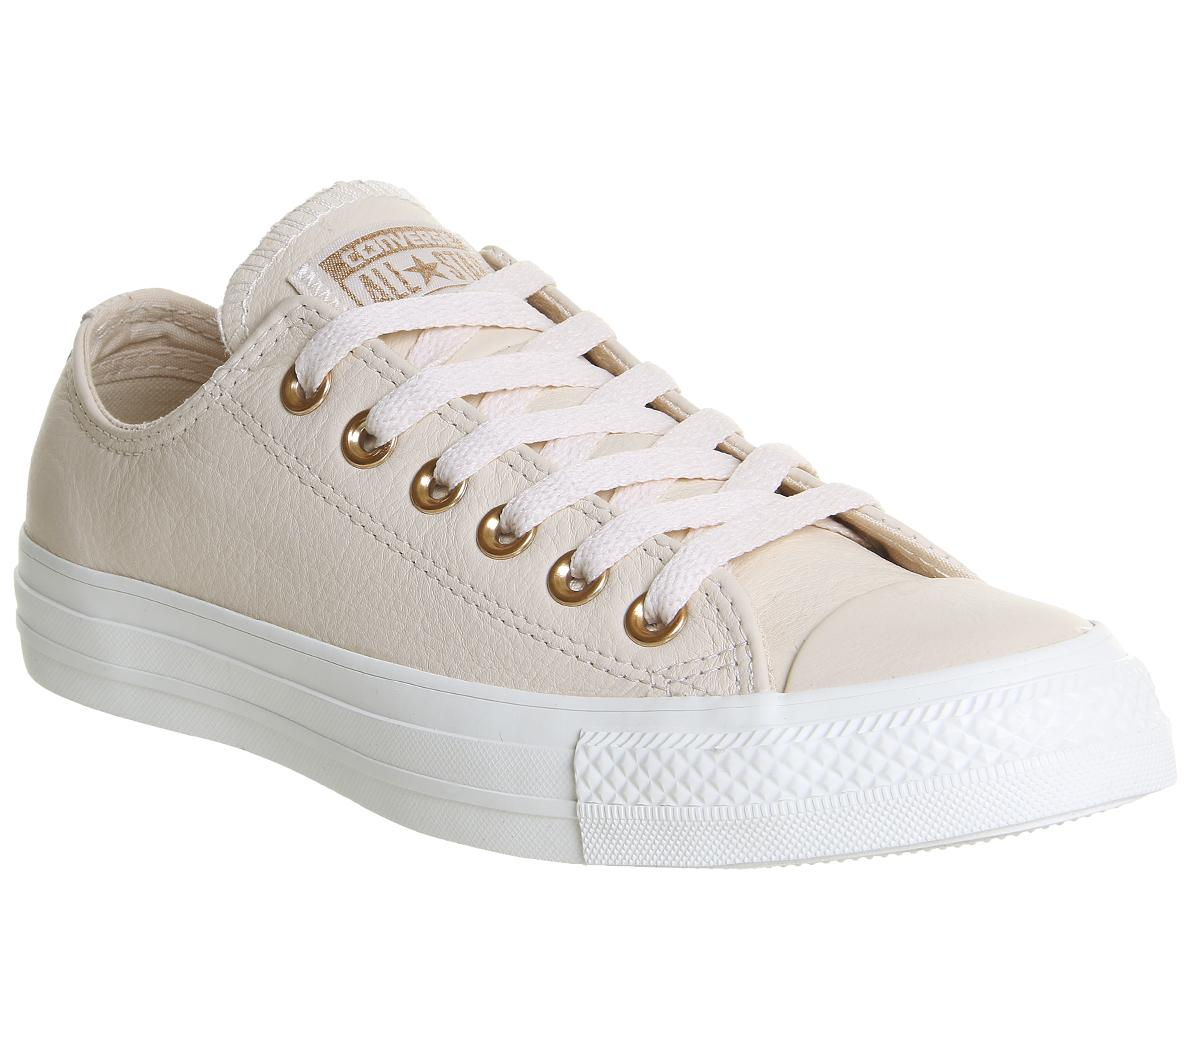 c53ad7f632ac Converse All Star Low Leather Egret Pastel Rose Tan Blush Gold ...